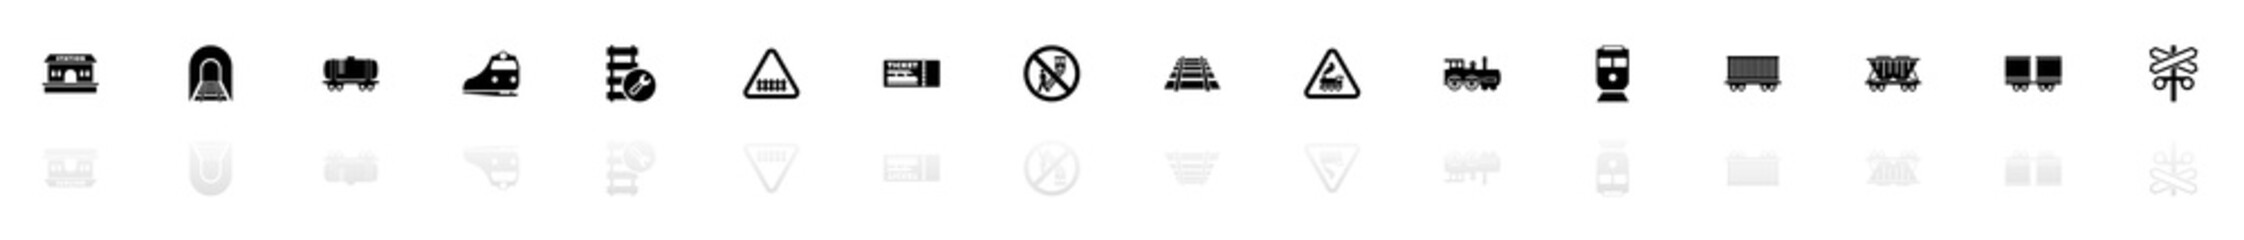 Trains icons - Black horizontal Illustration symbol on White Background with a mirror Shadow reflection. Flat Vector Icon.